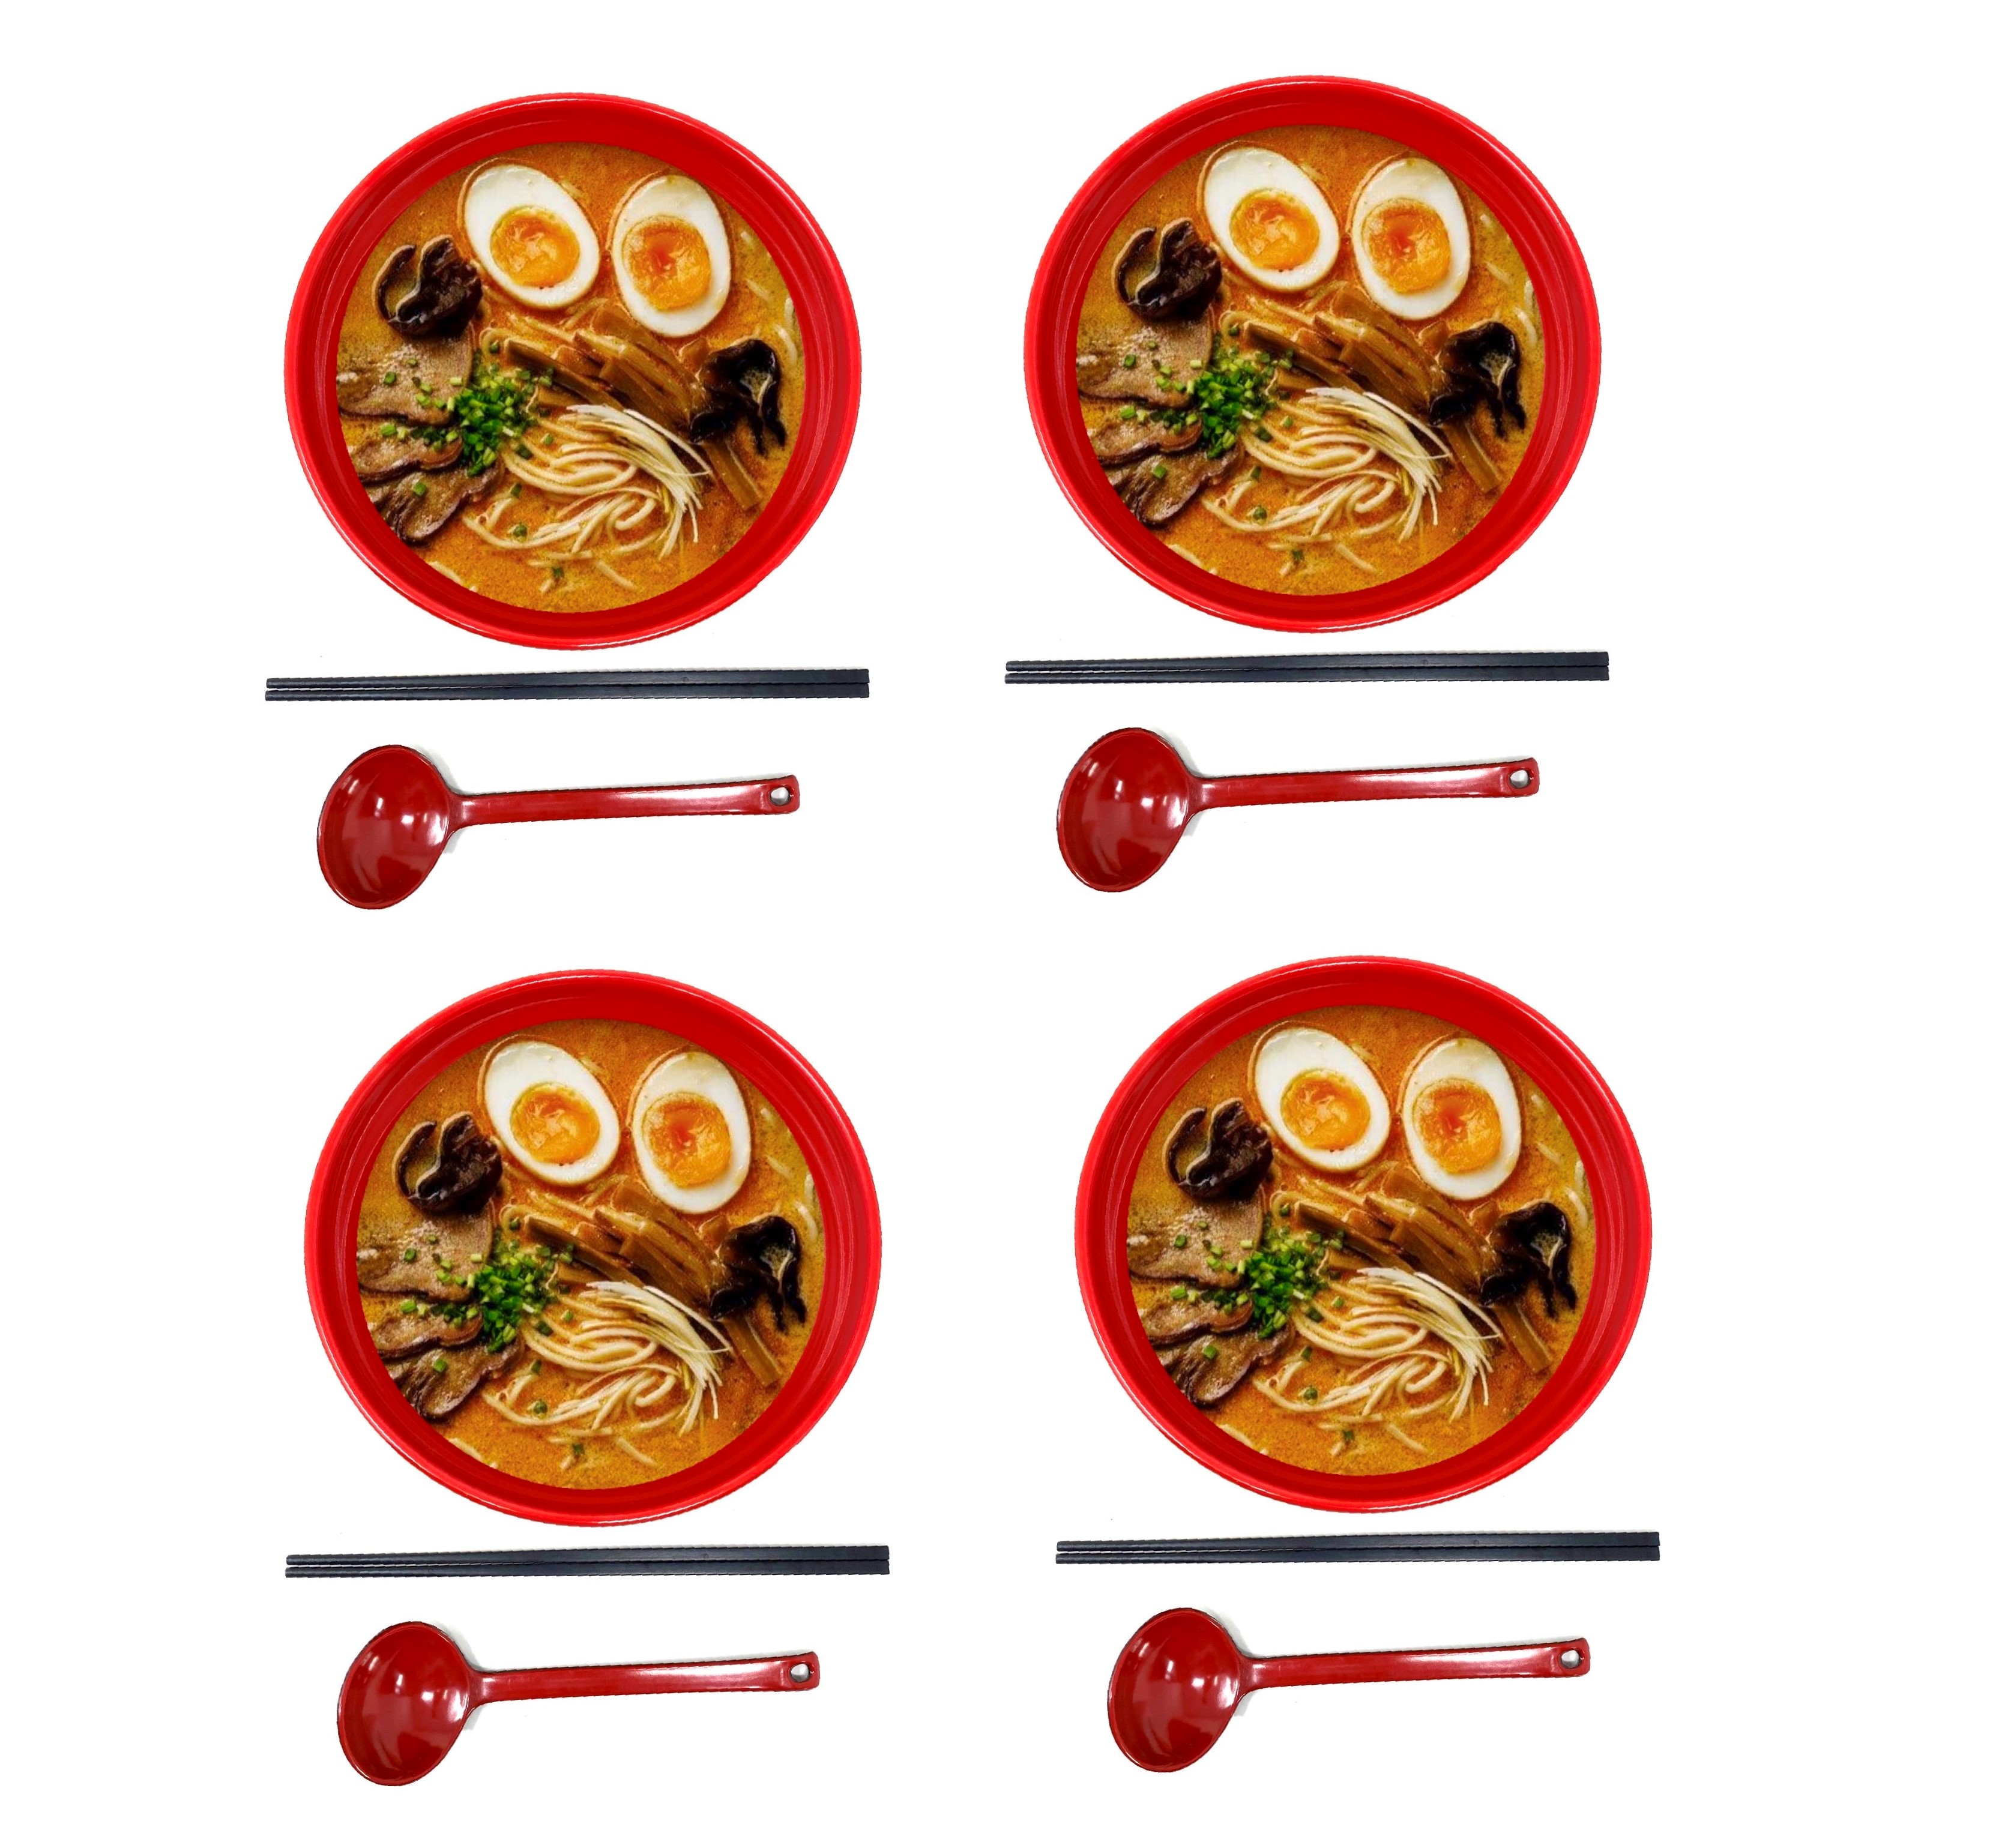 Tj Global 48 Ounce Red And Black Large Melamine Japanese Ramen Noodle Soup Bowl Set Hard Plastic Dishware For Udon Soba Pho Asian Noodles D8 X H4 Comes With Chopsticks And